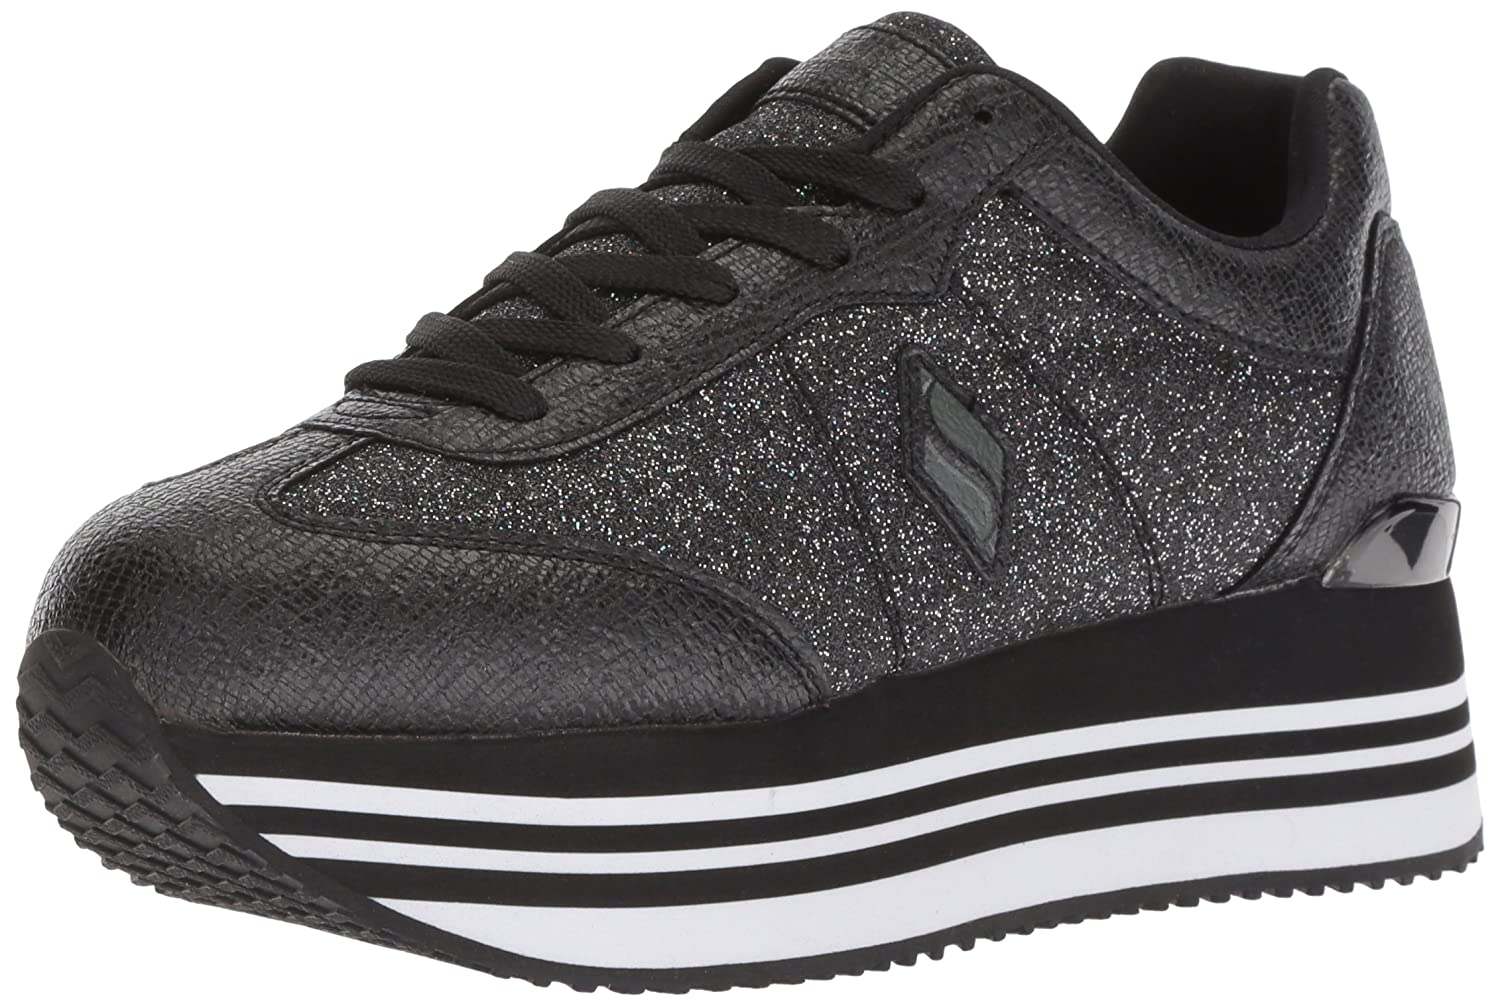 Skechers Women's Highrise-Glitter T Toe Sneaker B0787GT5B6 10 B(M) US|Black